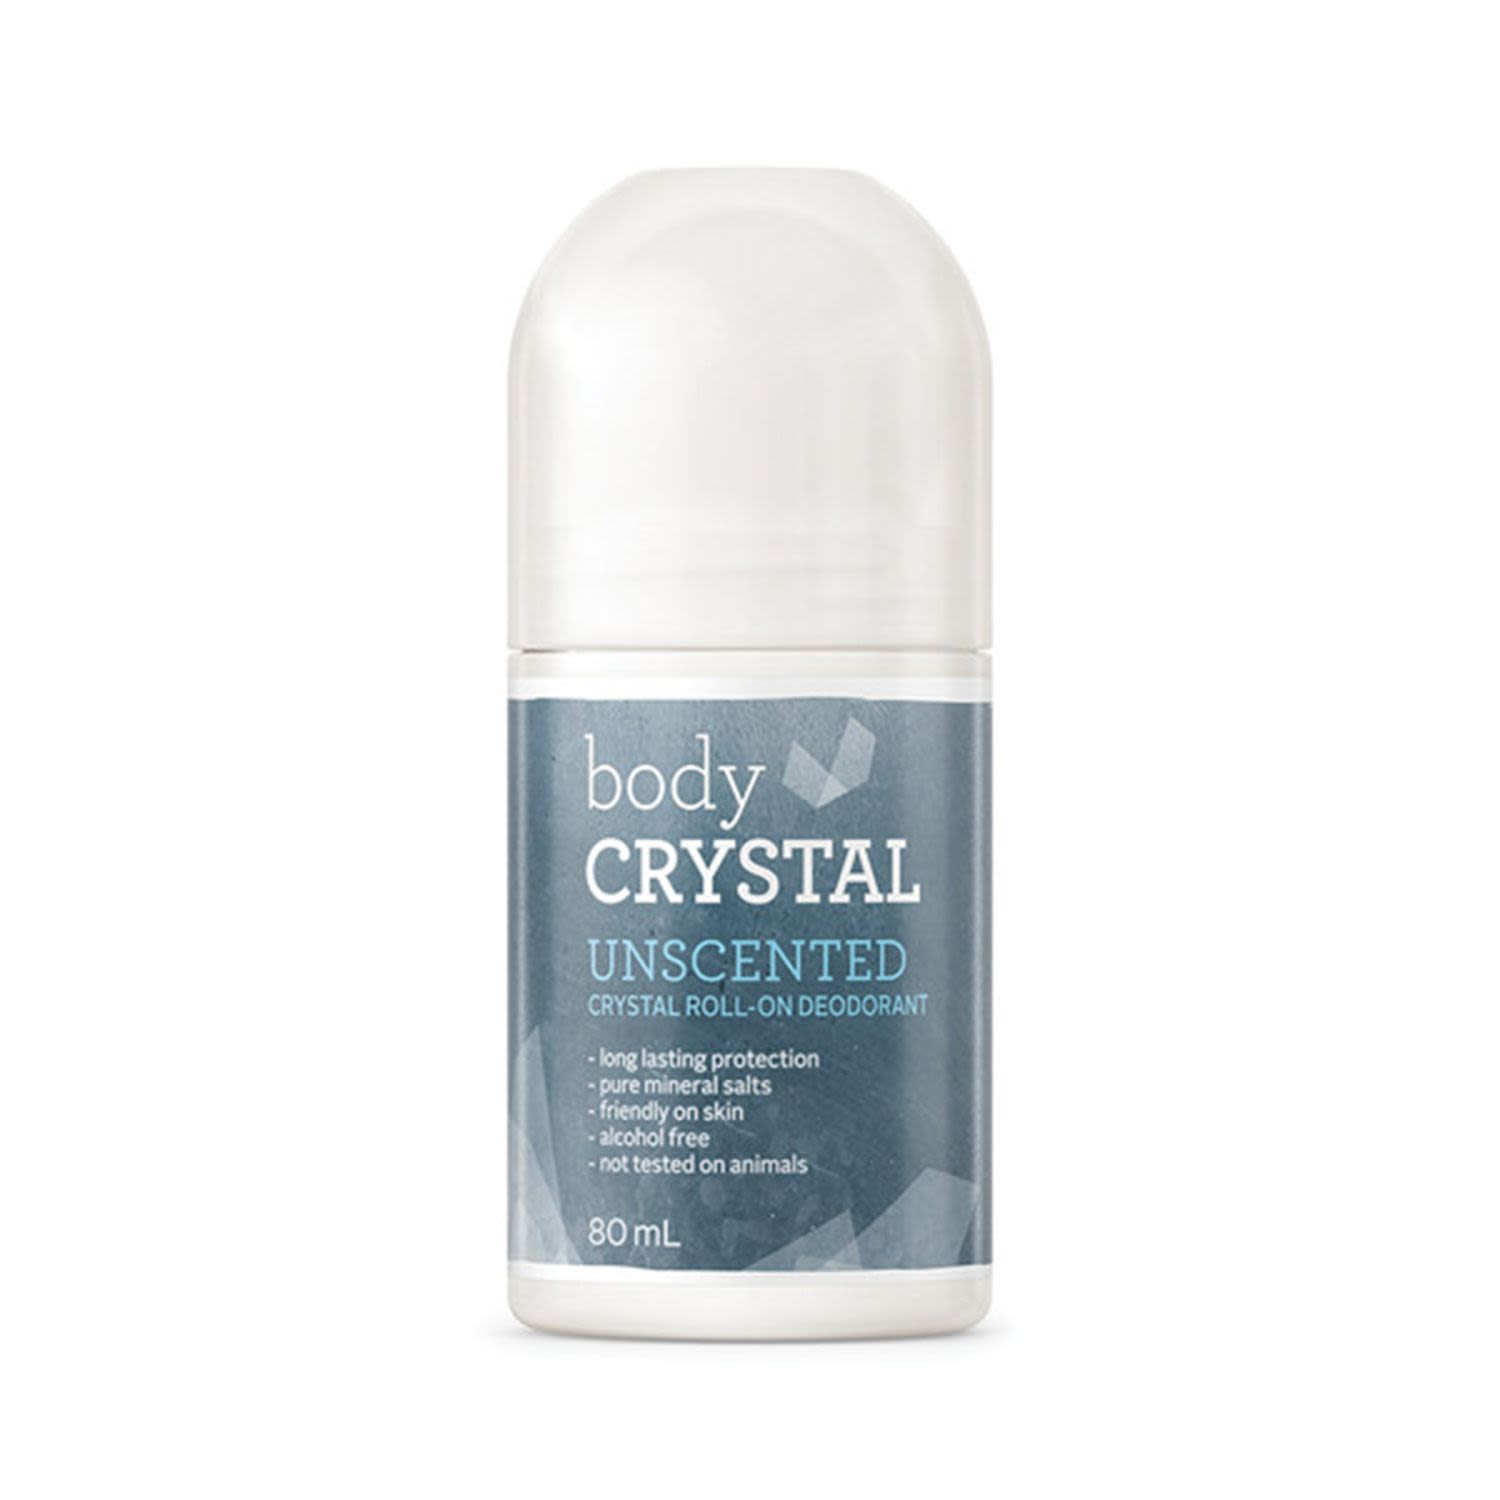 Body Crystal Crystal Roll-On Deodorant Unscented, 80 Millilitre